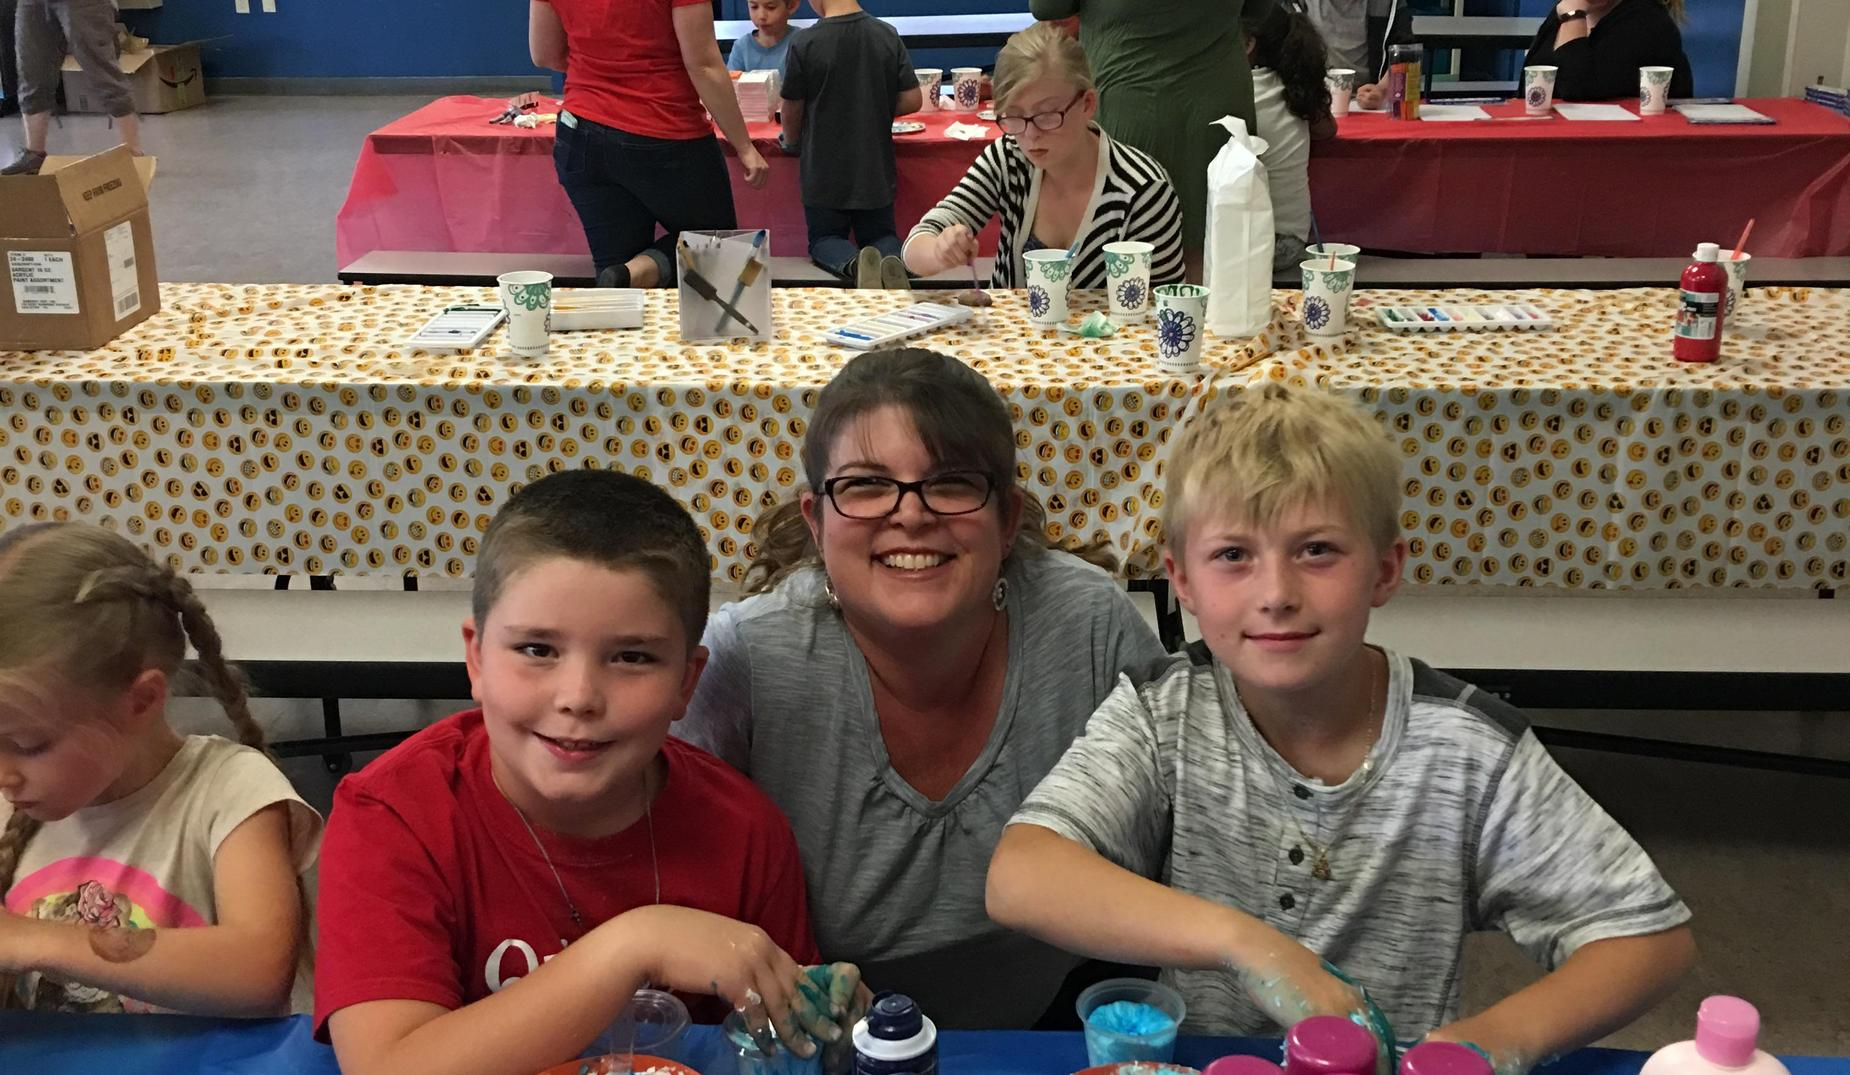 Ms. Pini, Colton and Hunter